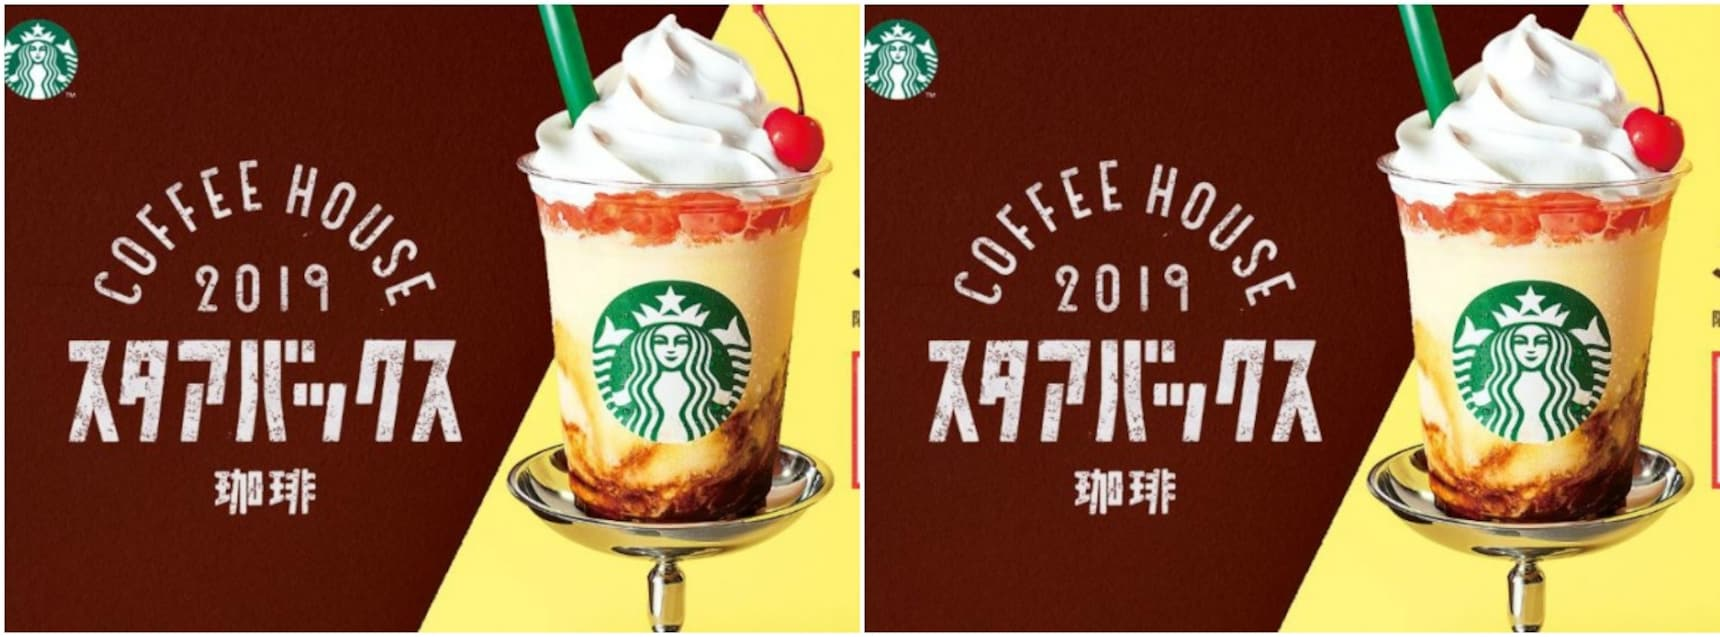 New Retro Sweet Treat from Starbucks Japan